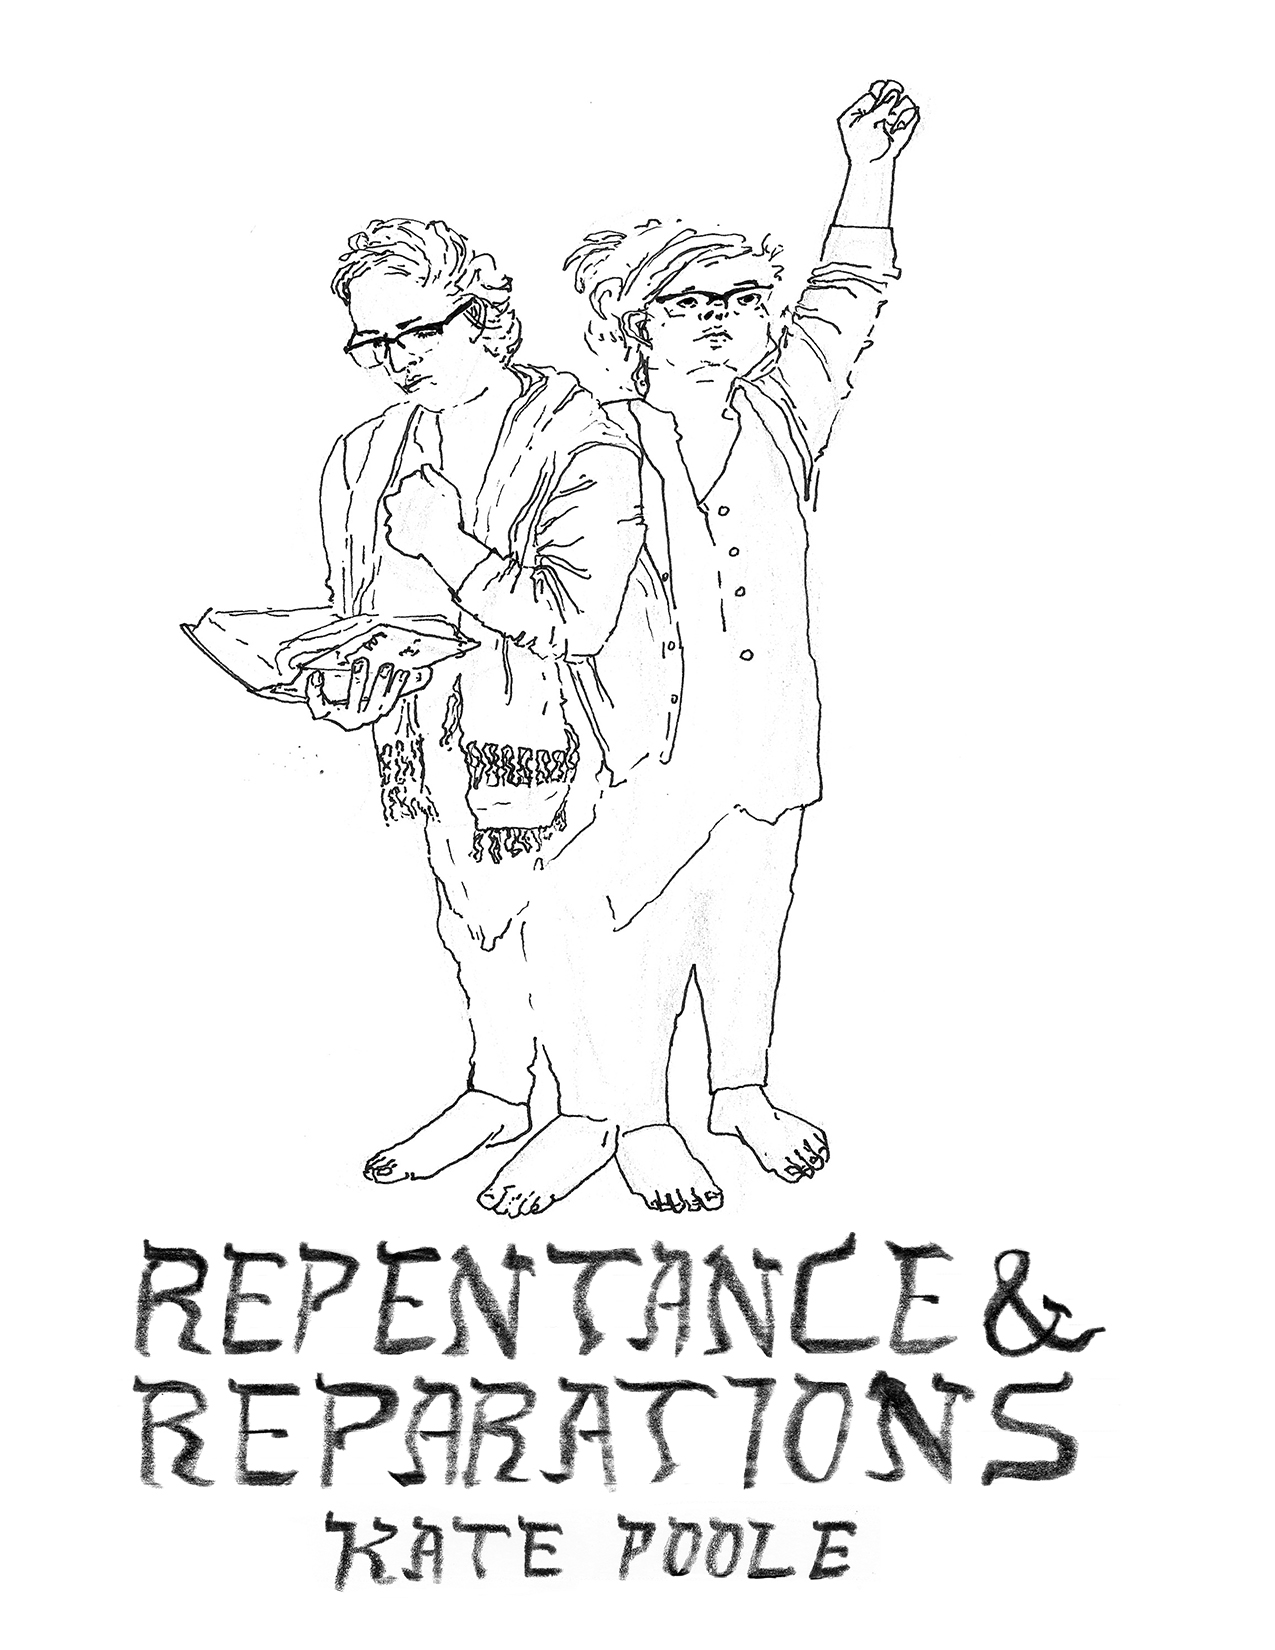 Reparations and Reparations by Kate Poole Cover, a woman wearing a tallis is praying and rapping her fist against her chest in a traditional gesture for Al Chait for Yom Kippur, the same woman on the right is raising her fist in a sign of solidarity and looking up hopefully